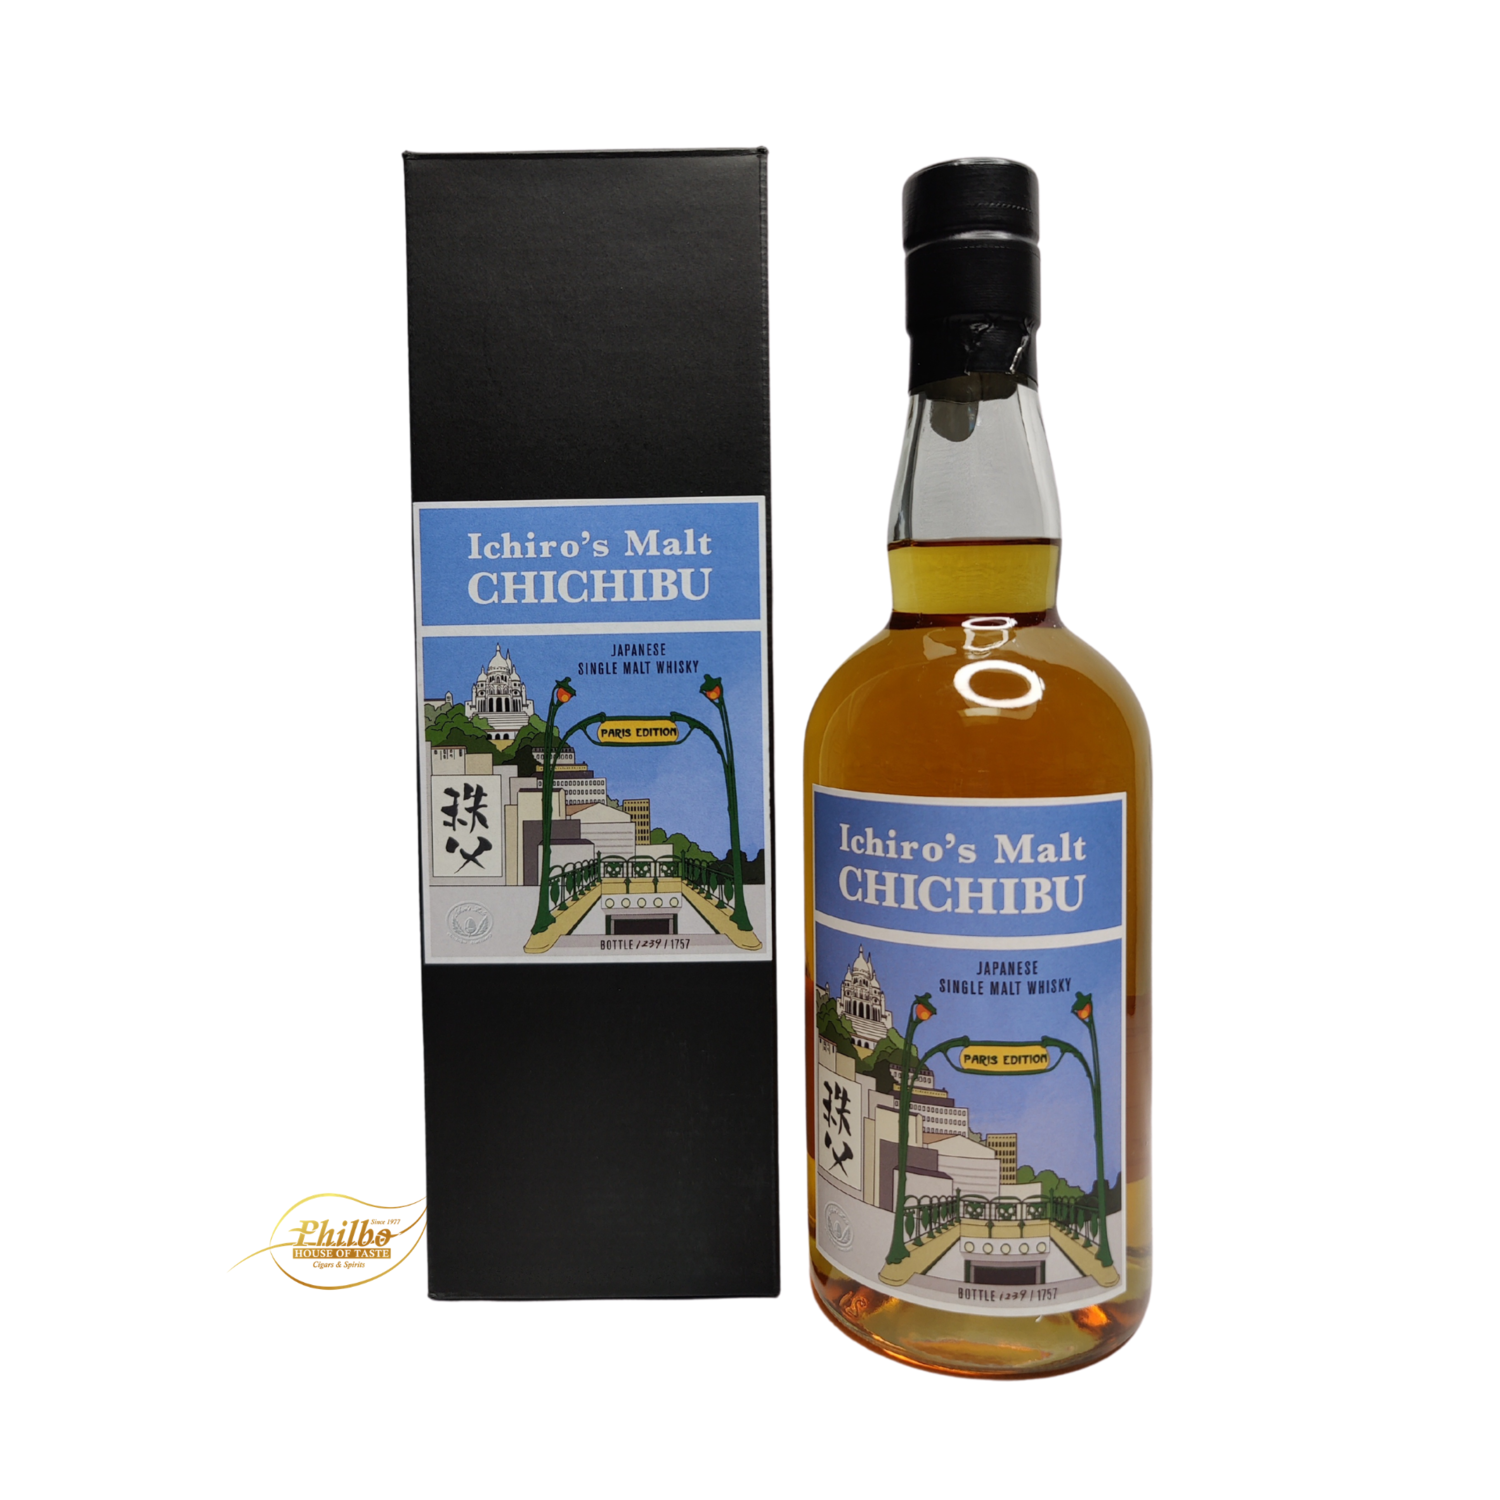 Ichiro's malt Chichibu Paris Edition 2019 - only 1757 bottles - 50.5% - 70cl